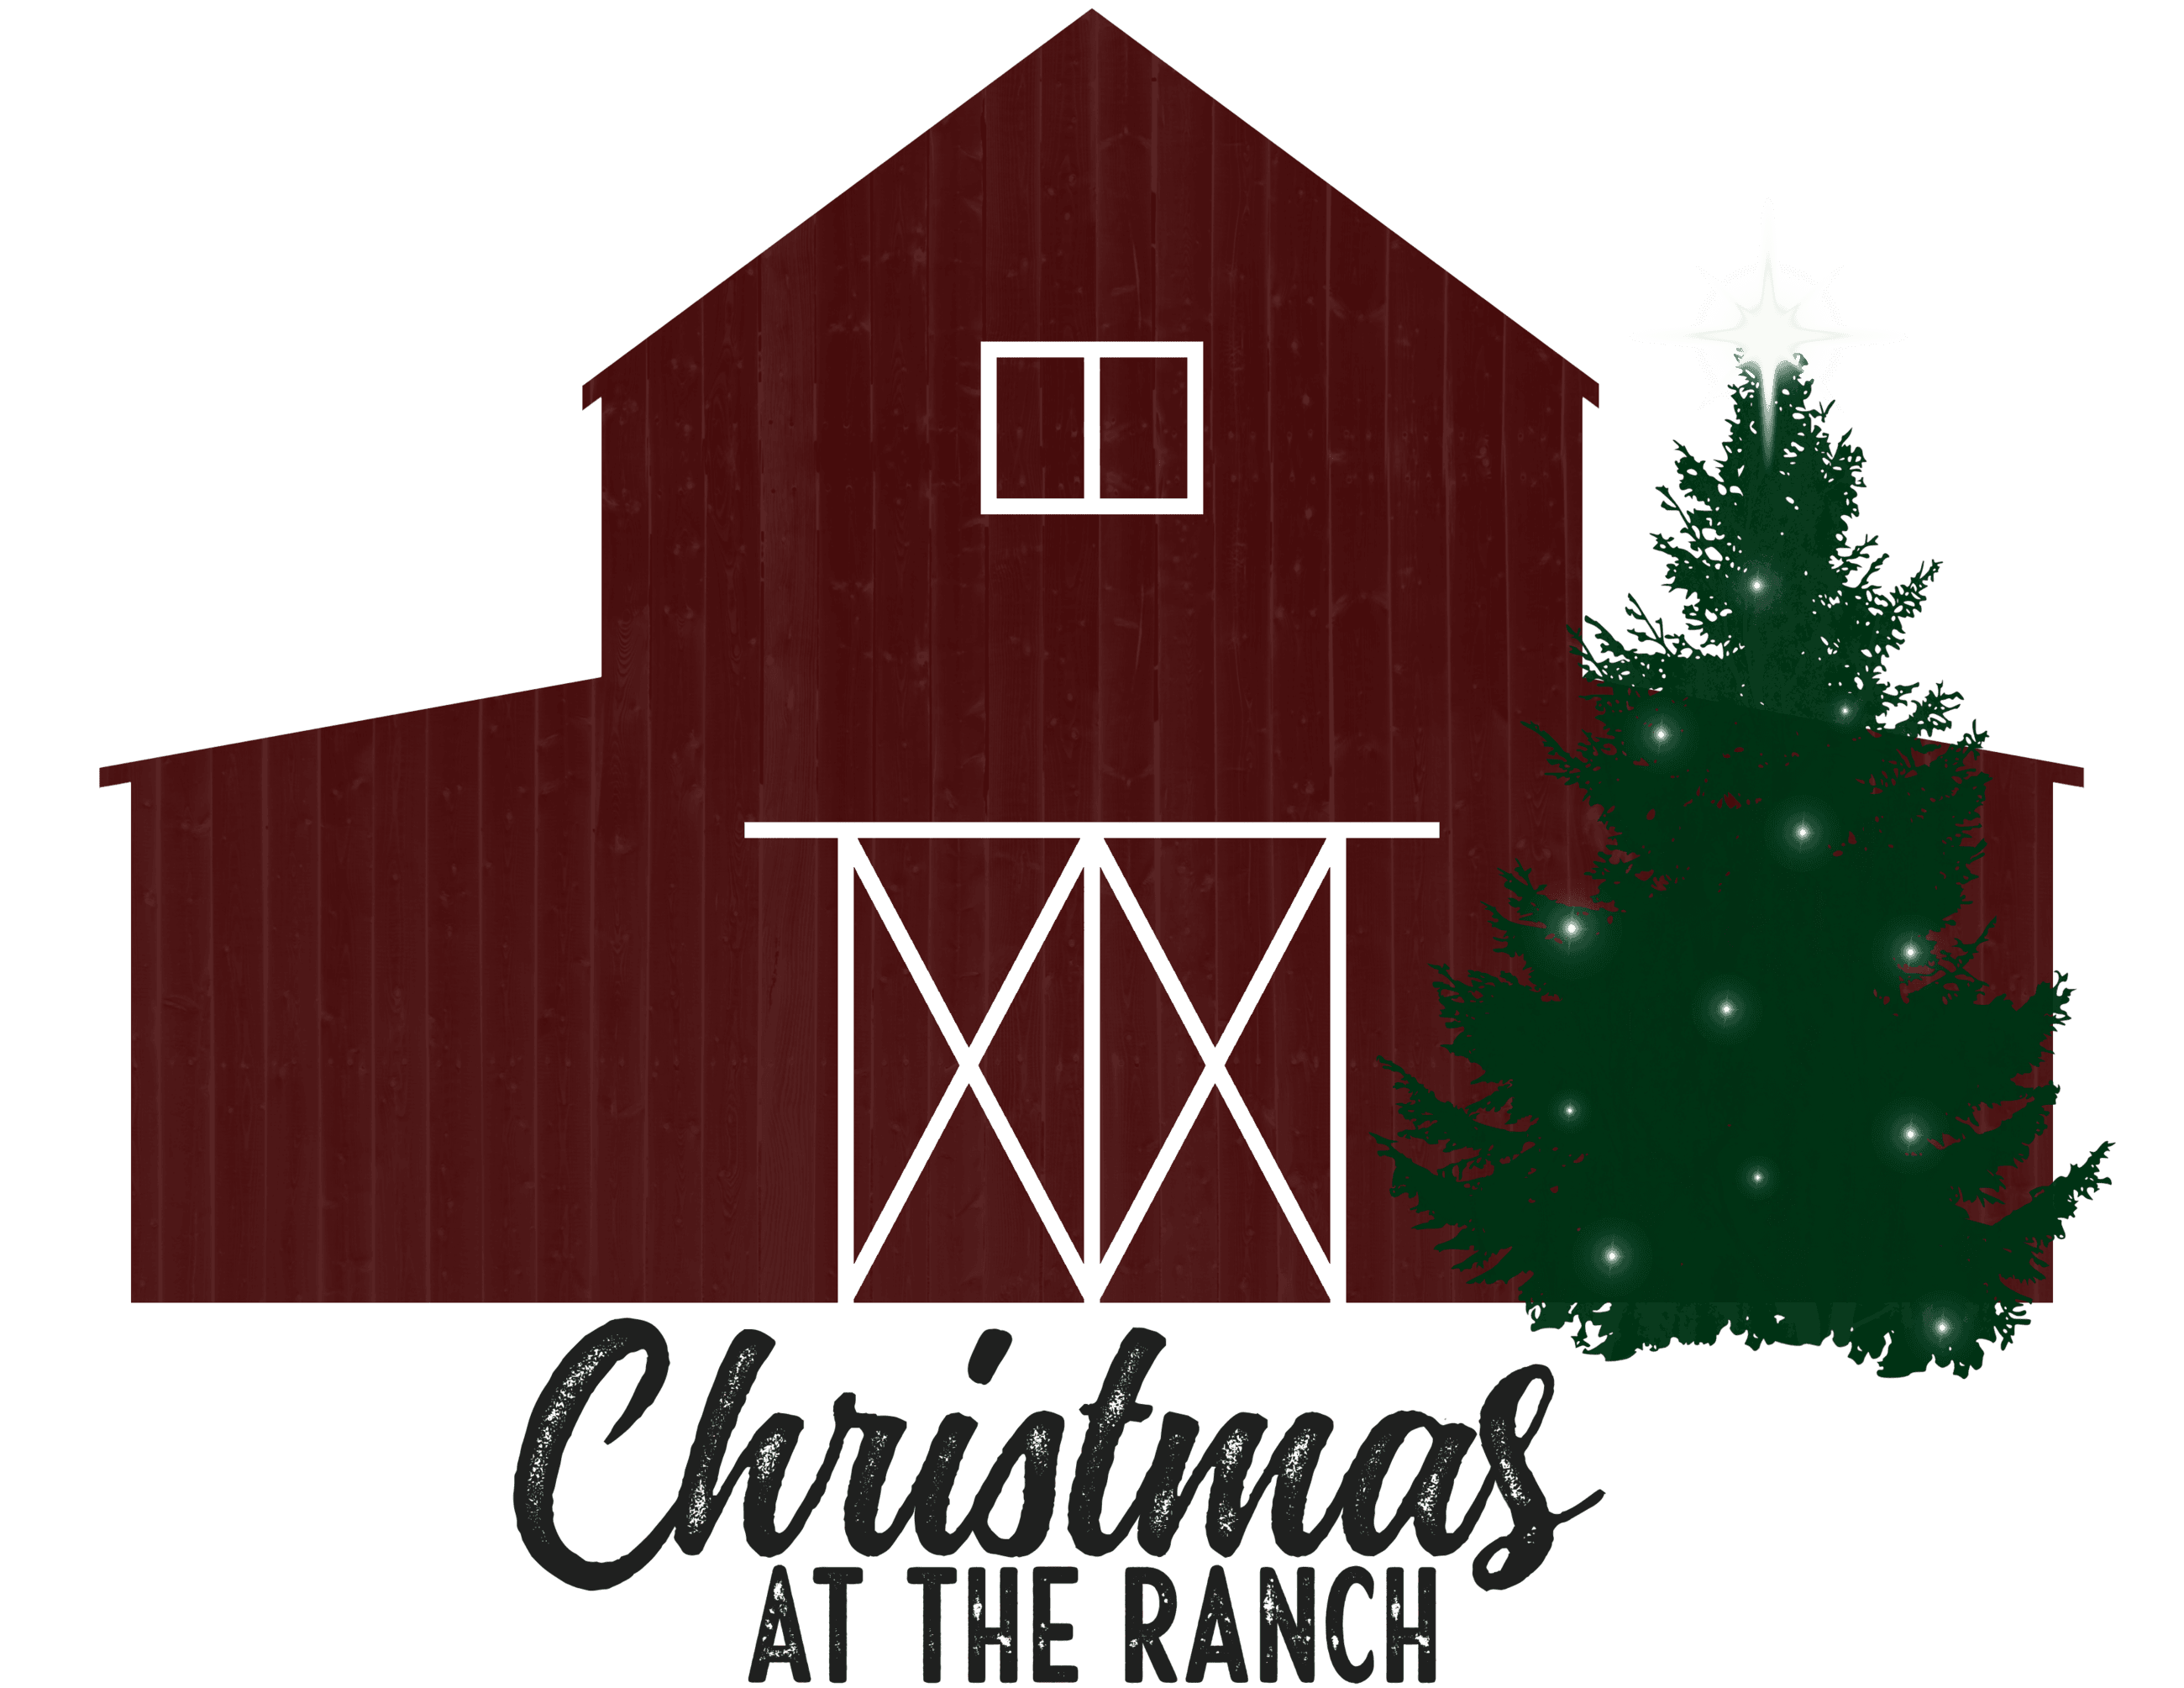 Christmas at the Ranch logo